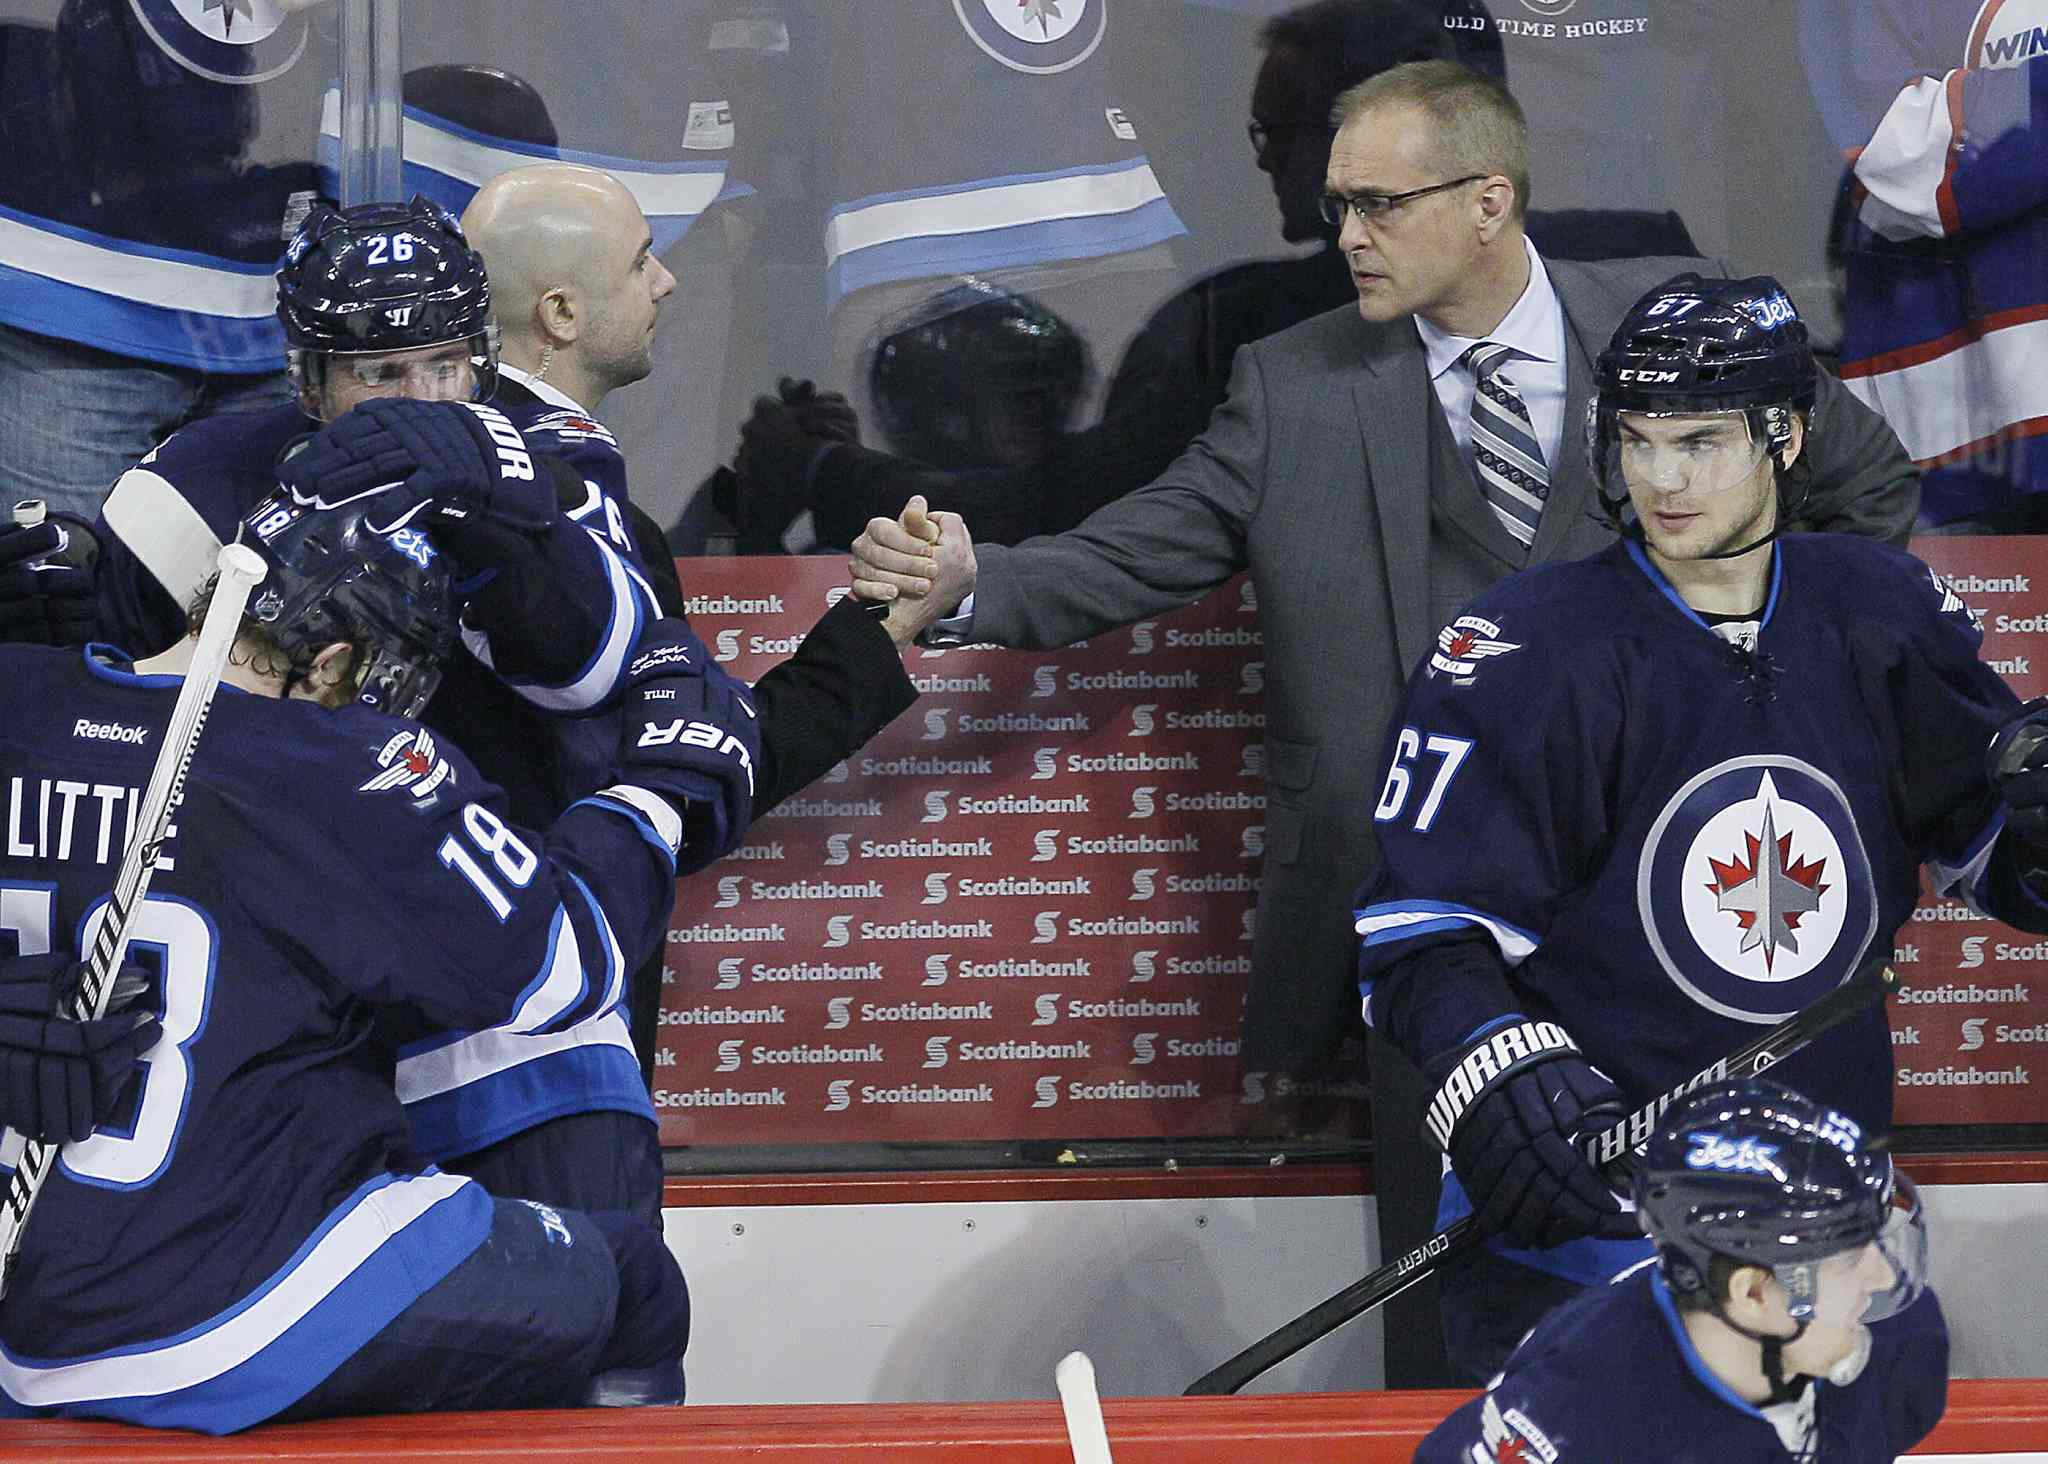 Winnipeg Jets' head coach Paul Maurice (right) and assistant coach Pascal Vincent congratulate each other after a shootout win over the Phoenix Coyotes in NHL action in Winnipeg on Thursday.